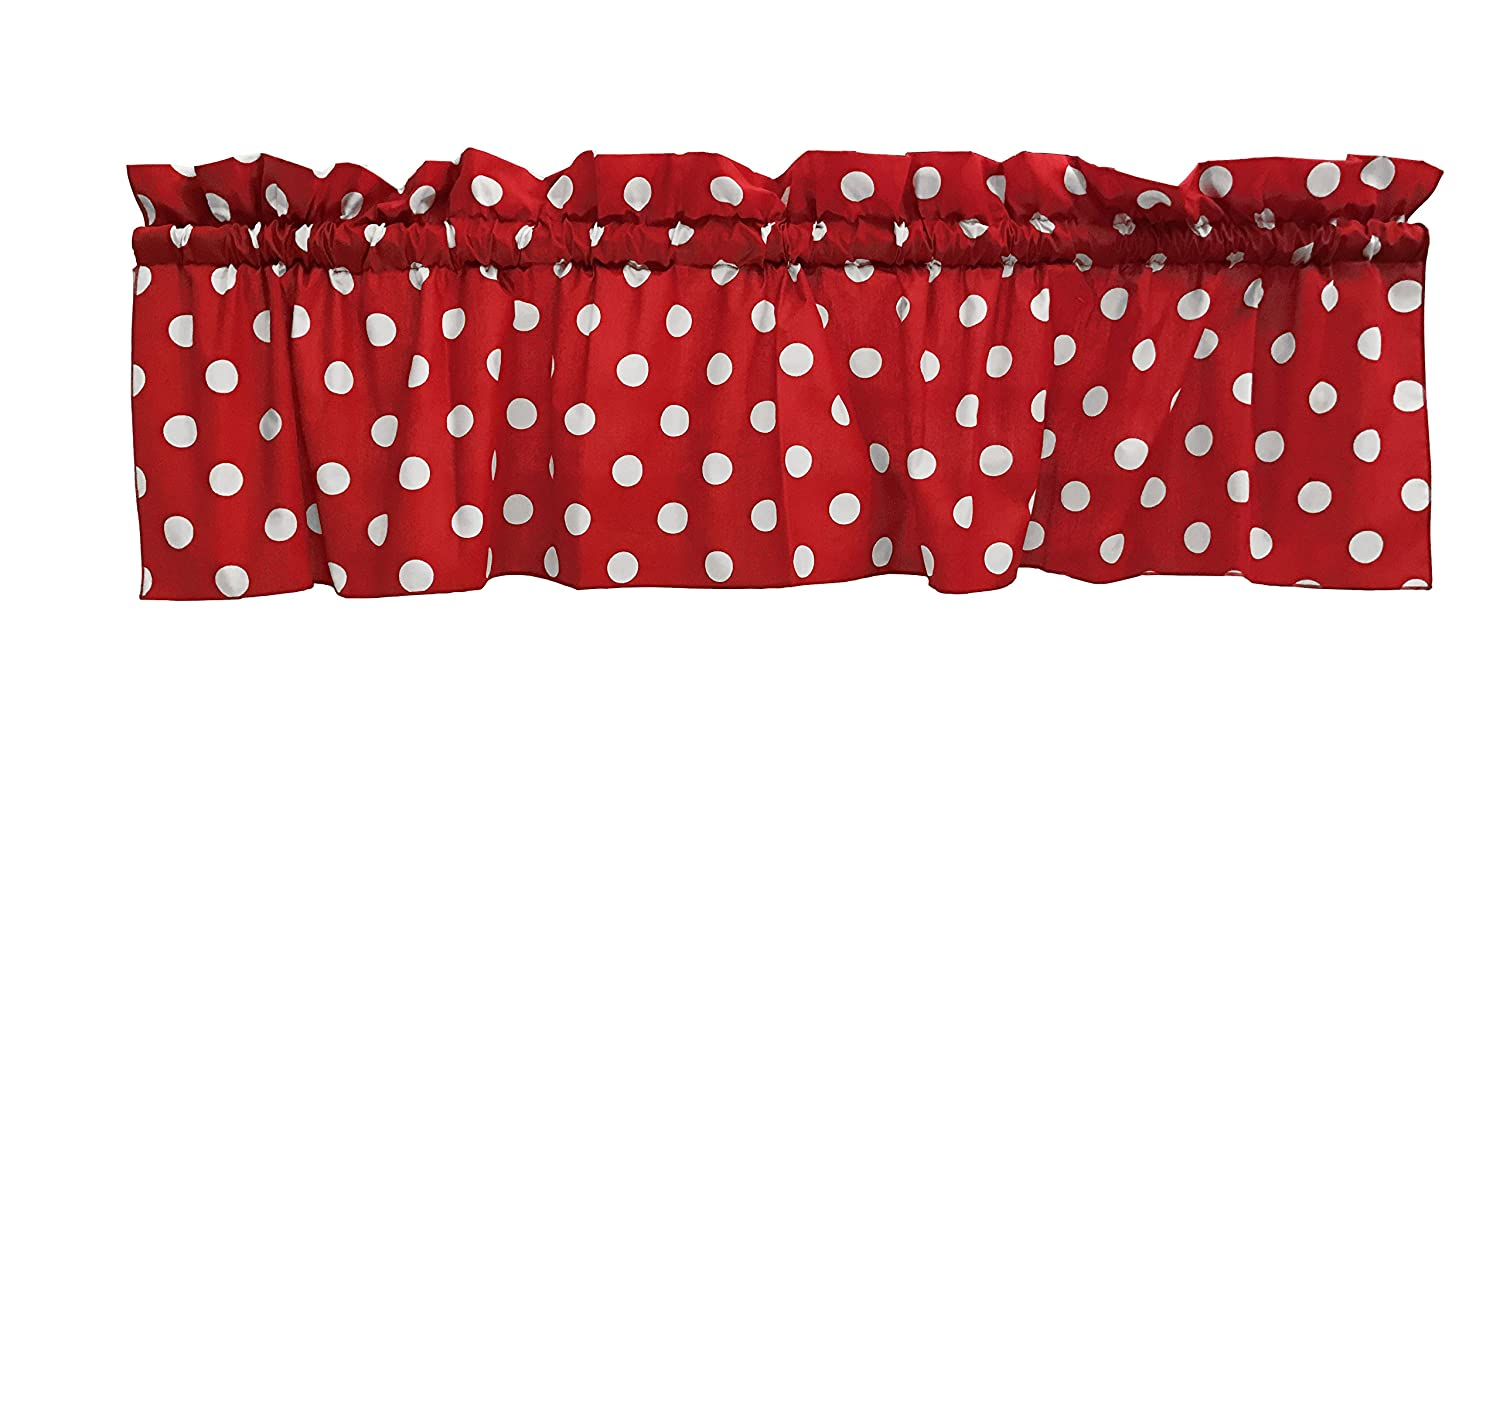 2 Pack Decorative Cotton Curtain Valance / White Polka Dot on Red / 14 Inch Tall / 58 Inch Wide / Two Piece Set by Zen Creative Designs